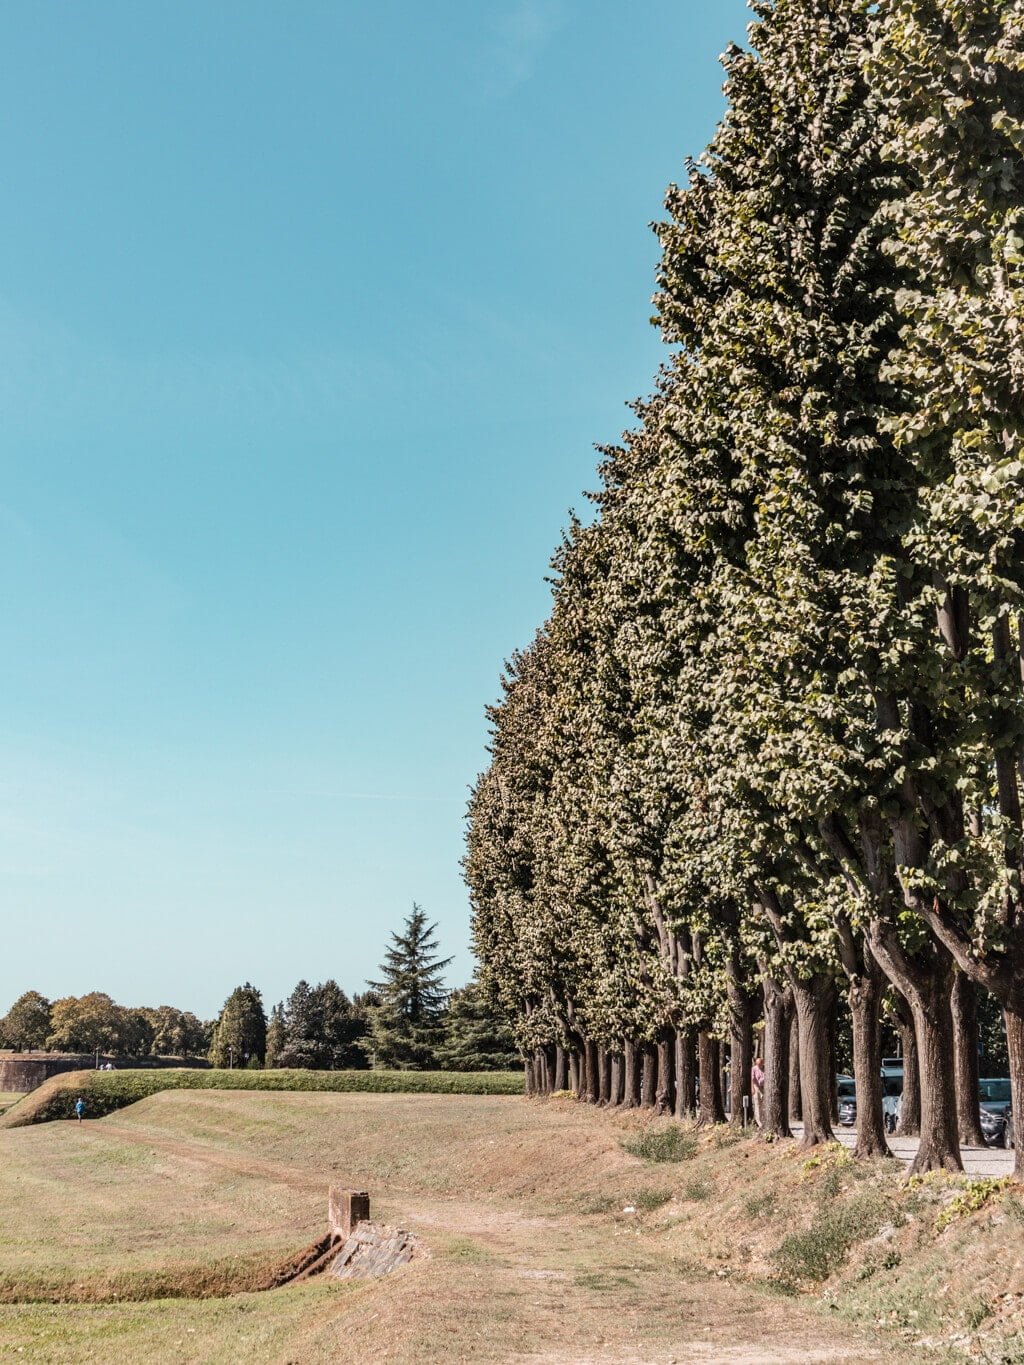 Lucca    A Guide For Planning A Trip To Tuscany, Italy - Things to do, including food & restaurants tips, wineries, and road trip tips